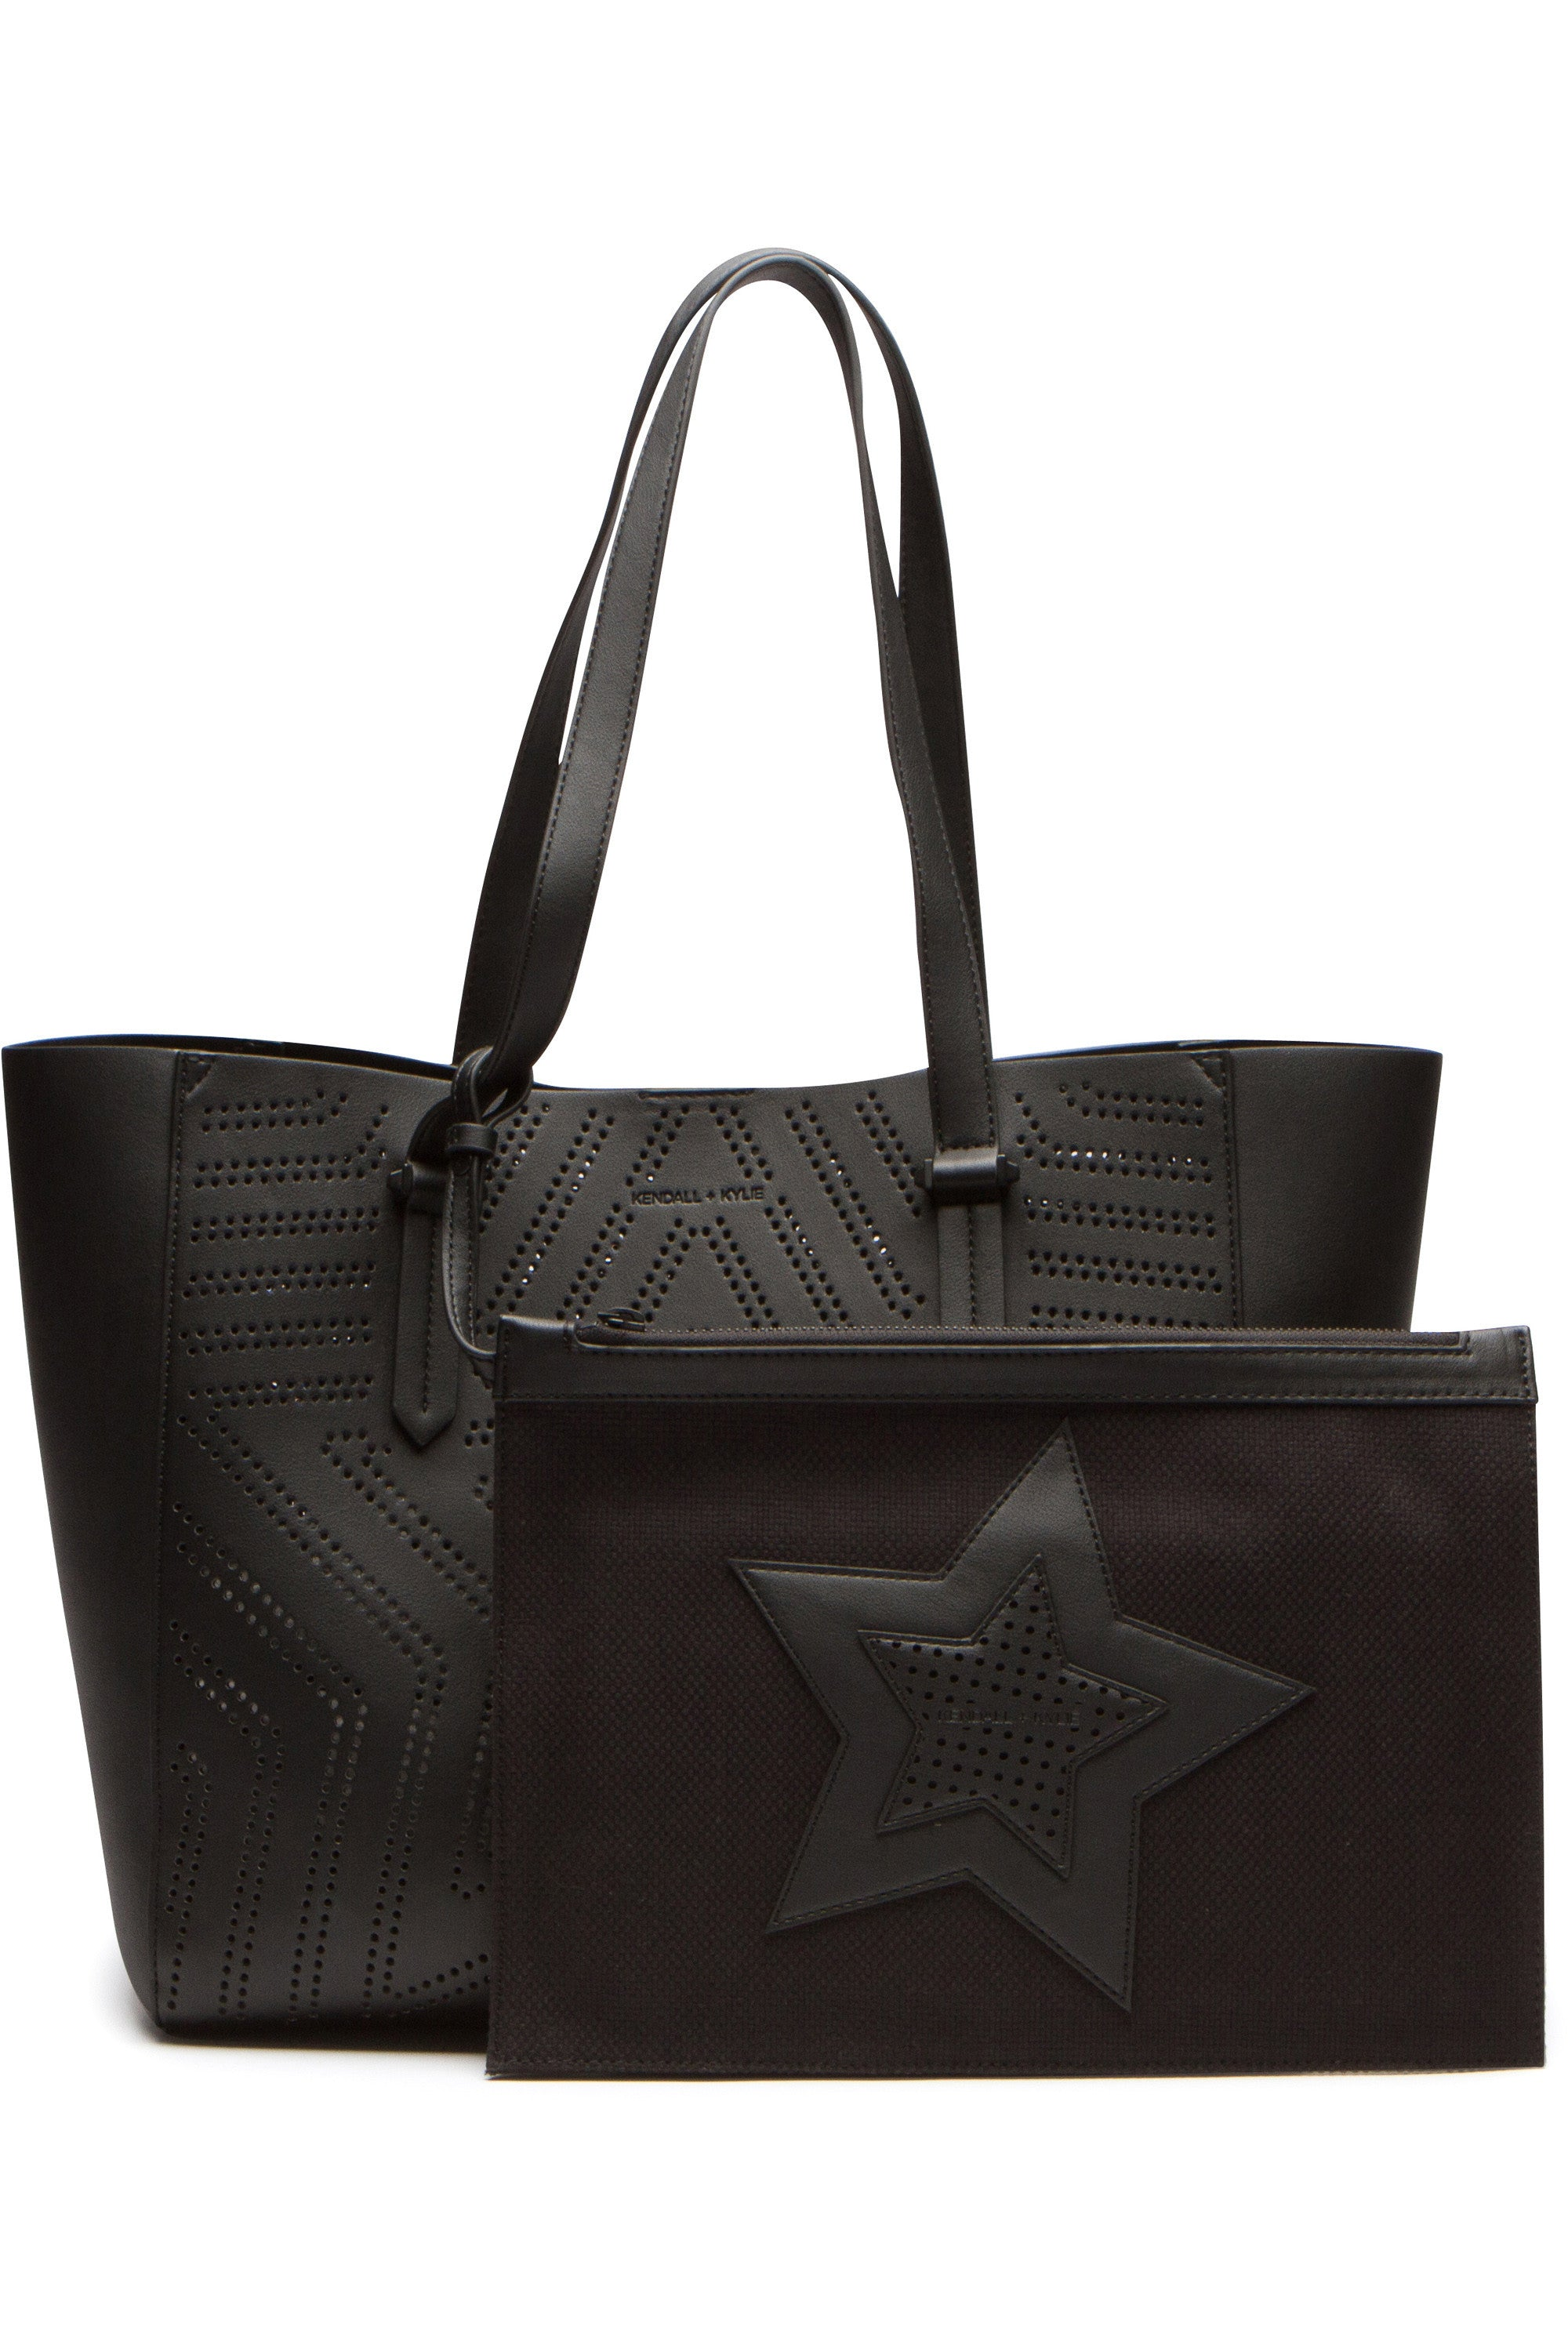 SHELLEY STAR TOTE BAG